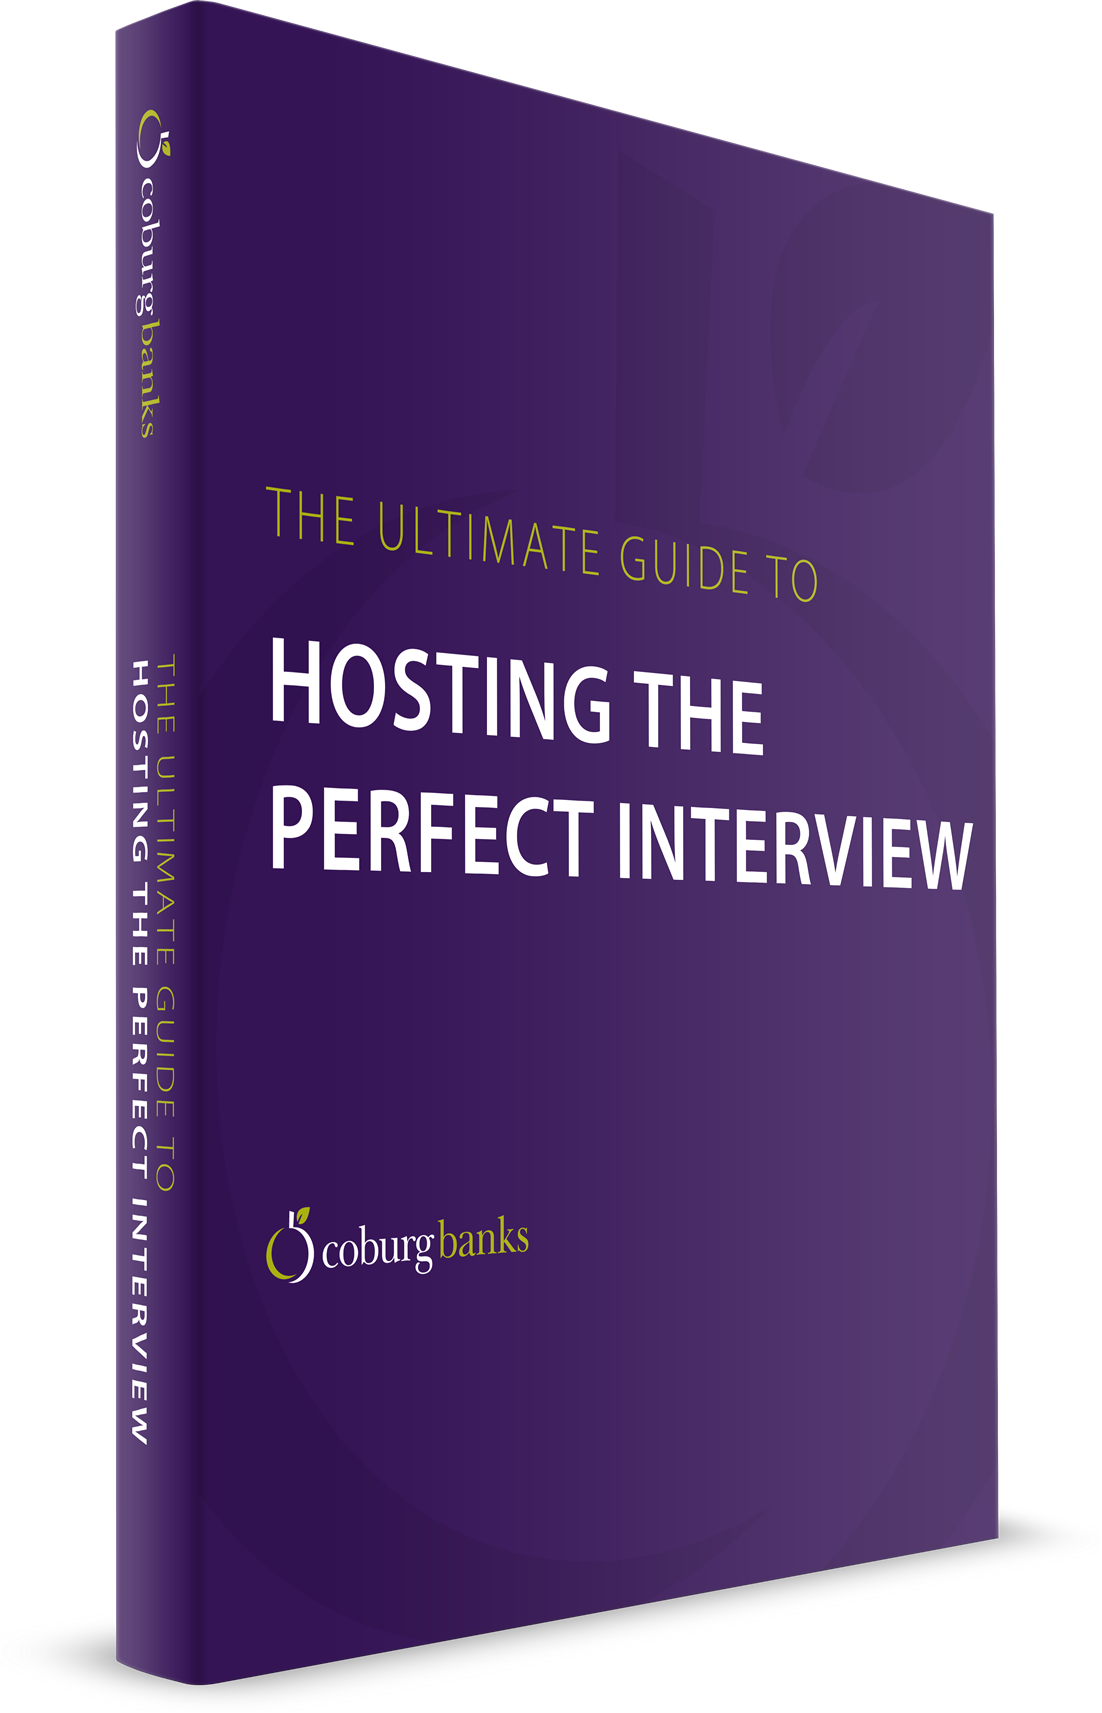 Everything you need to know about how to run outstanding interviews